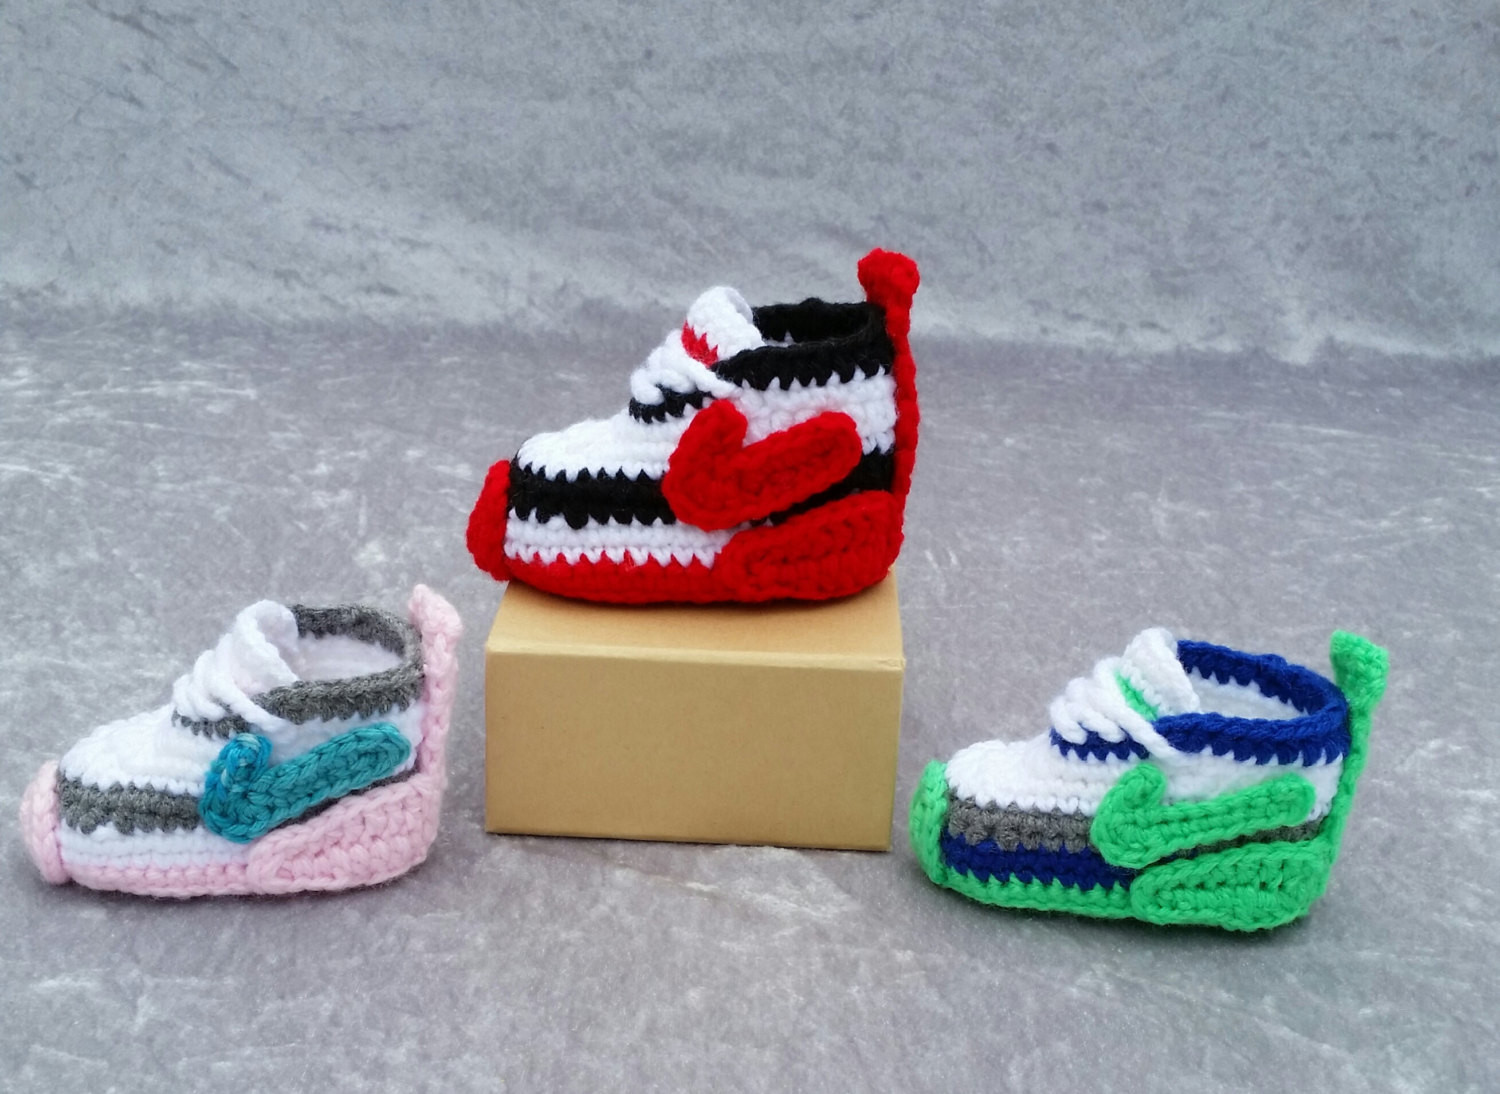 Crochet Sneakers Luxury Crochet Nike Inspired Tennis Shoes Handmade Crocheted Baby Of Gorgeous 50 Pics Crochet Sneakers